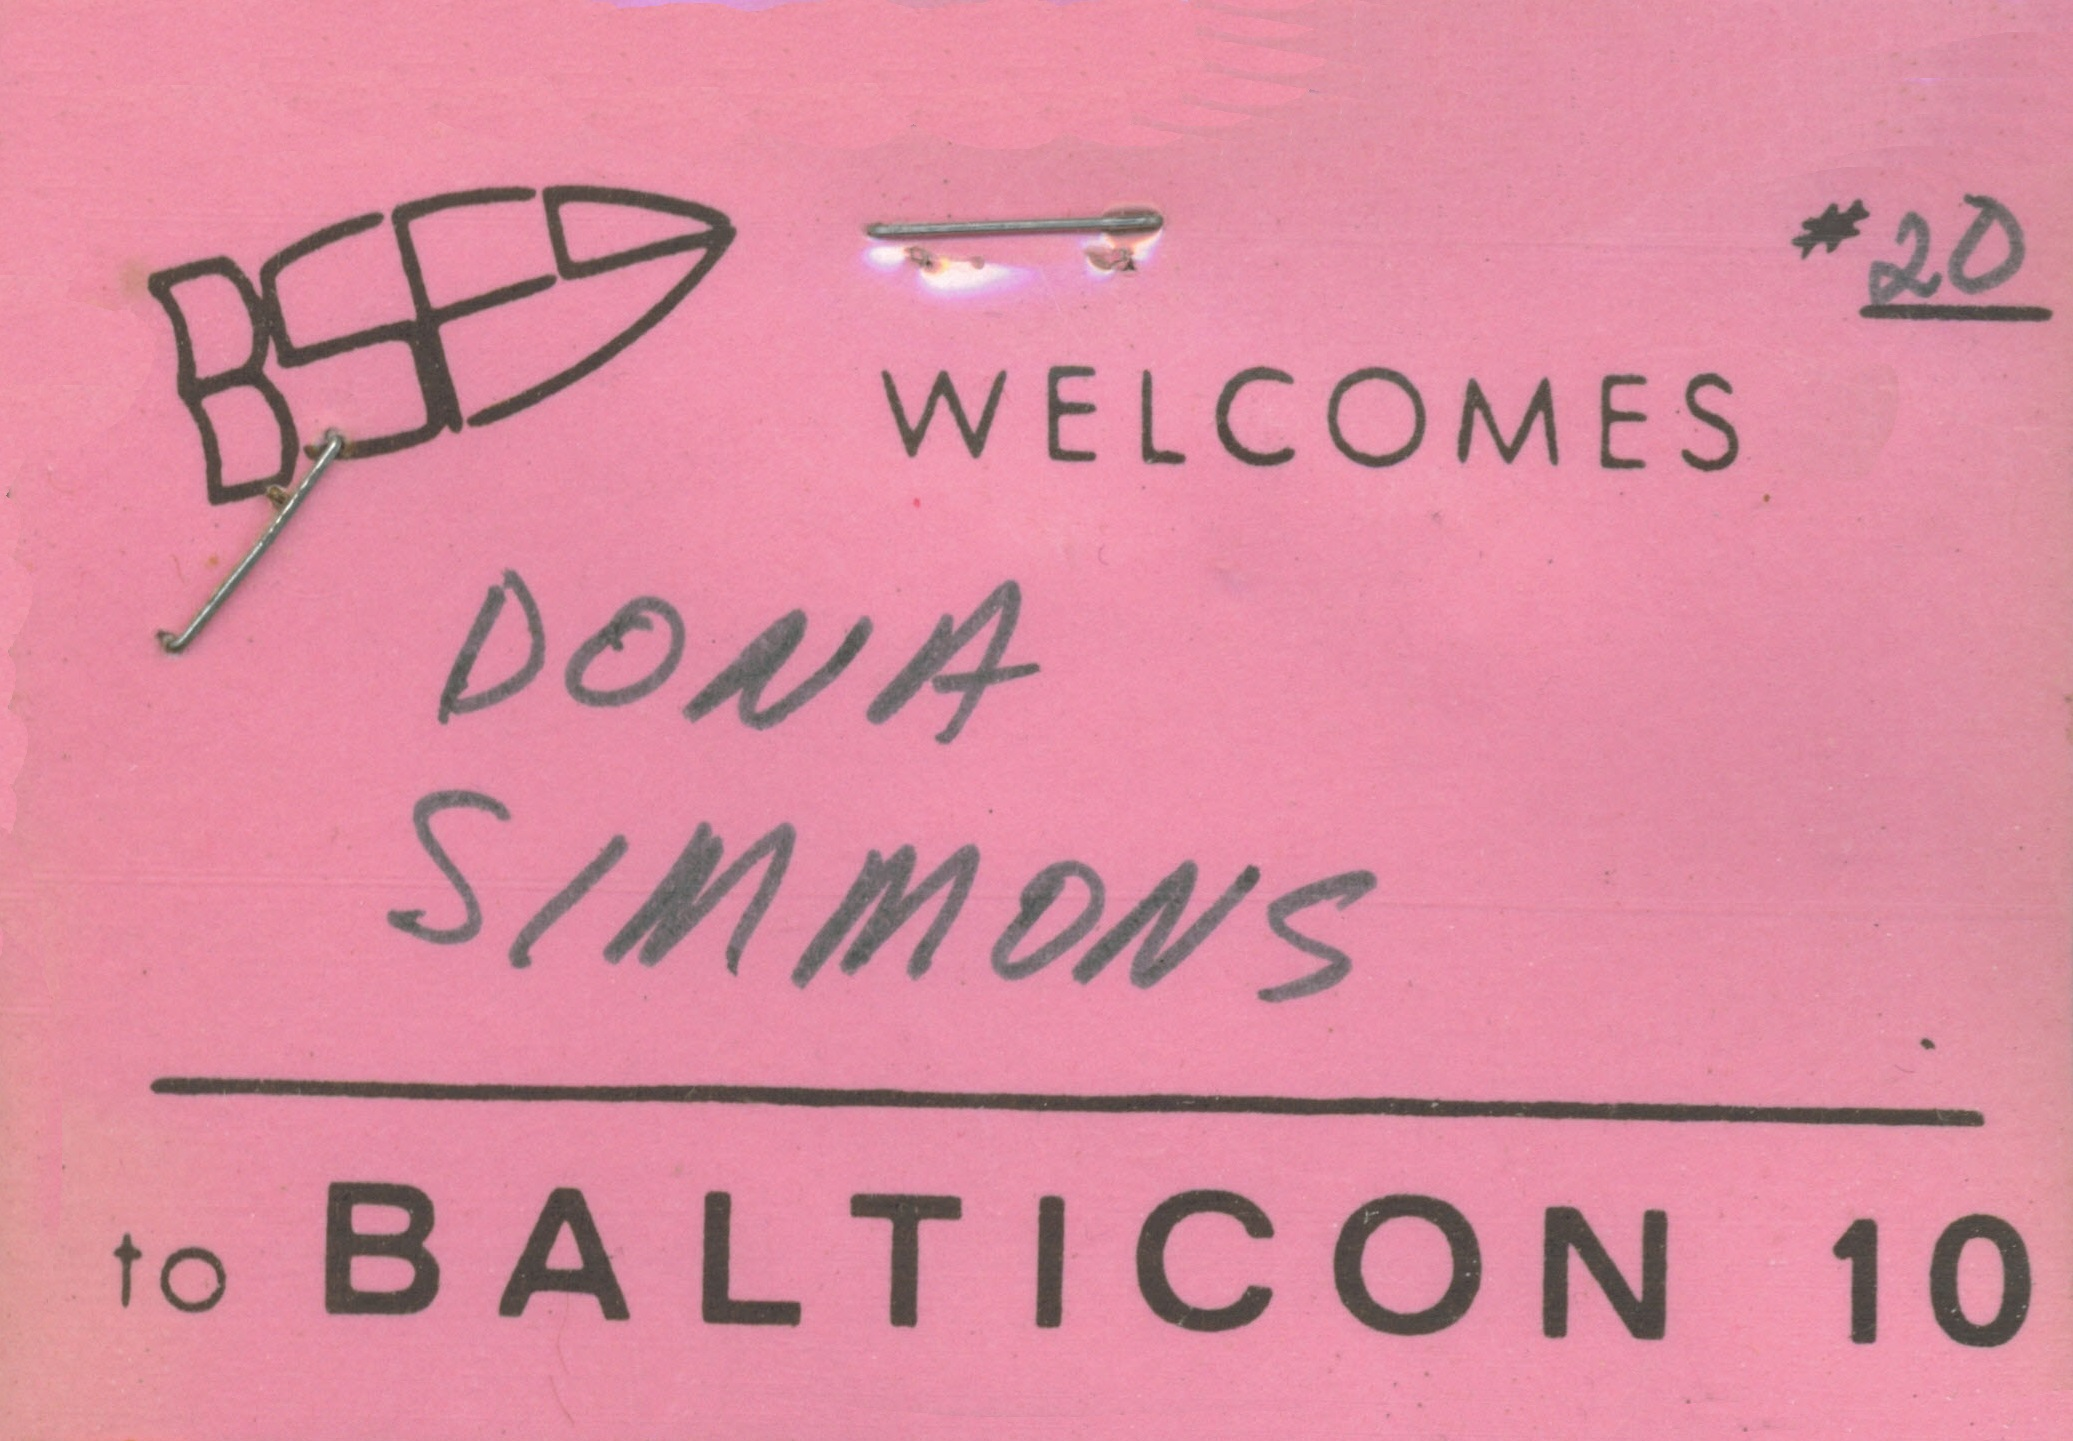 Balticon Badge 10